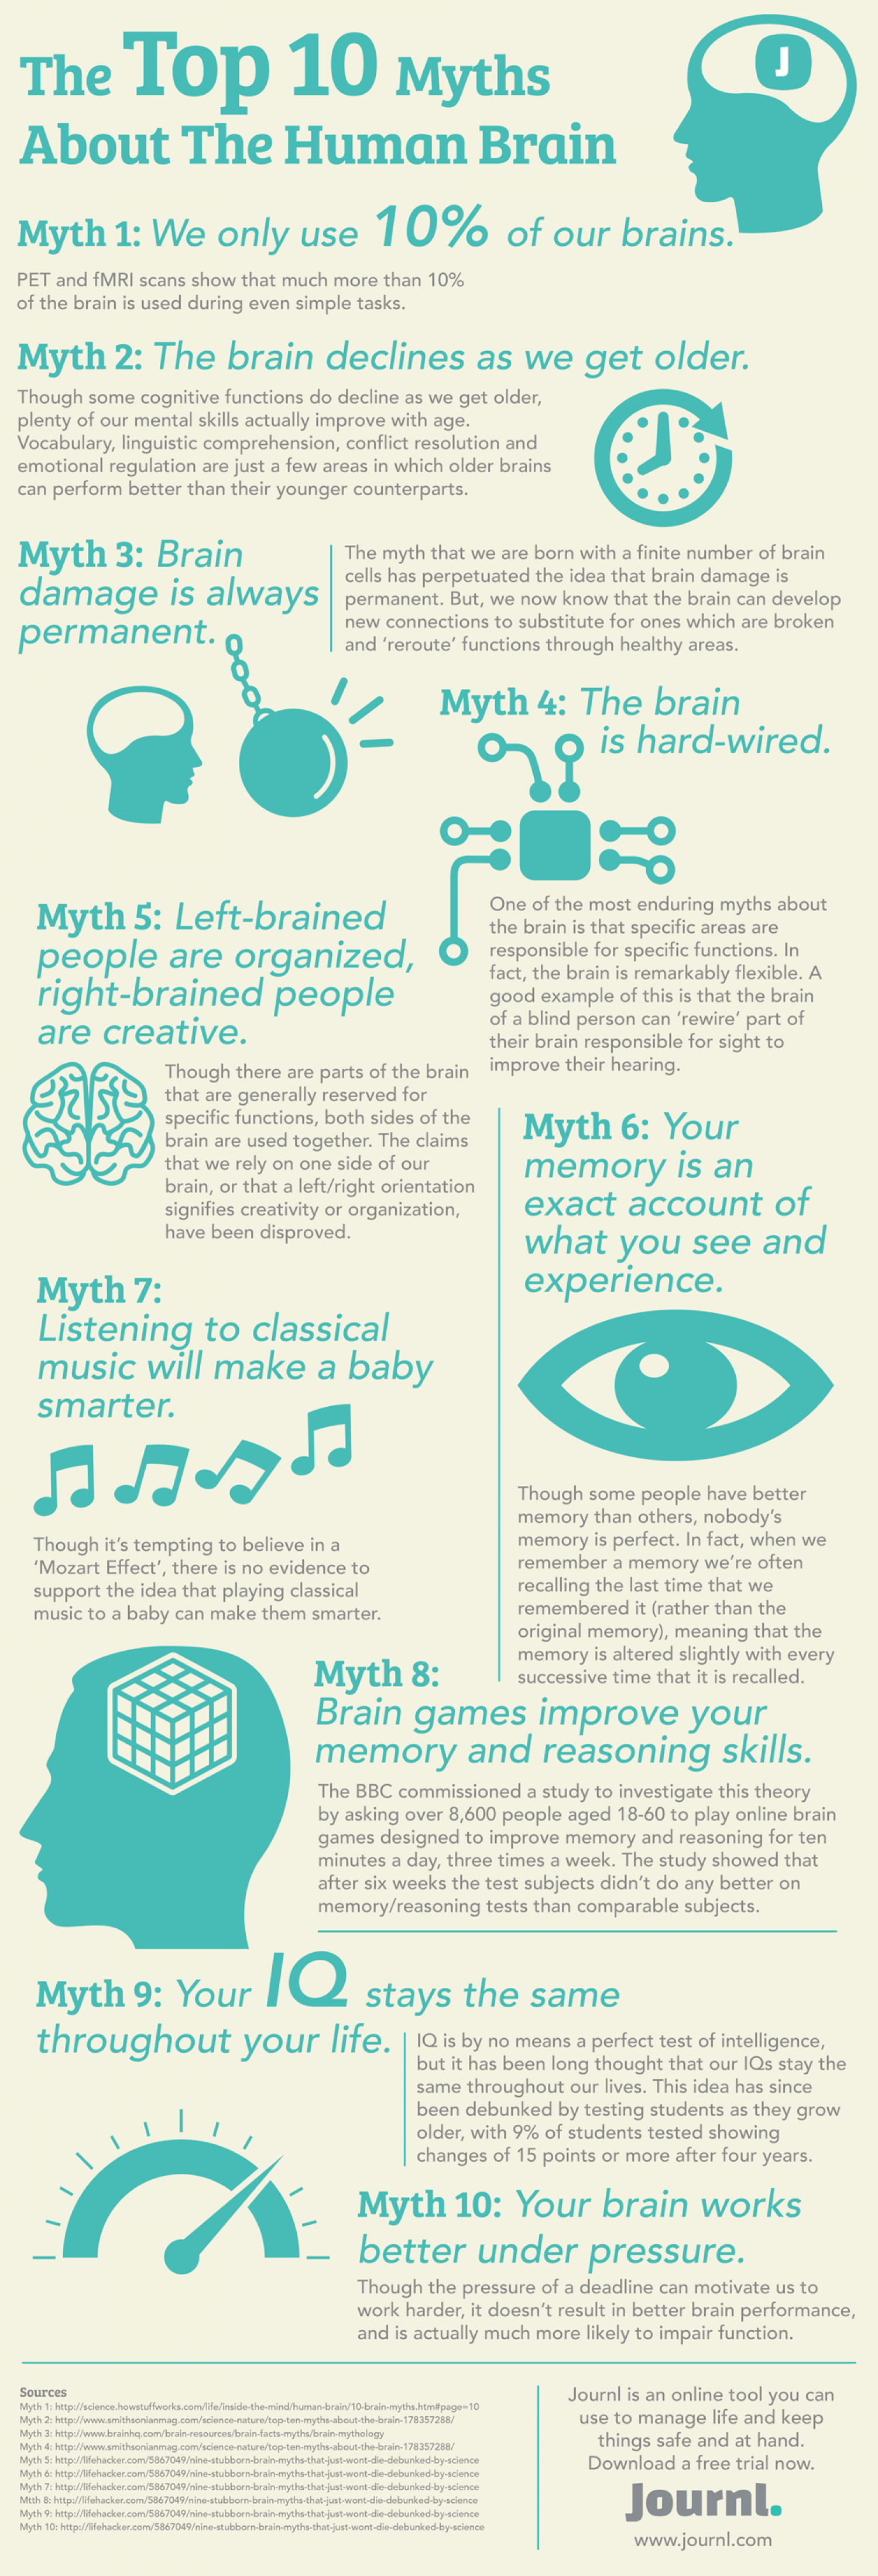 The Top 10 Myths About The Human Brain Infographic